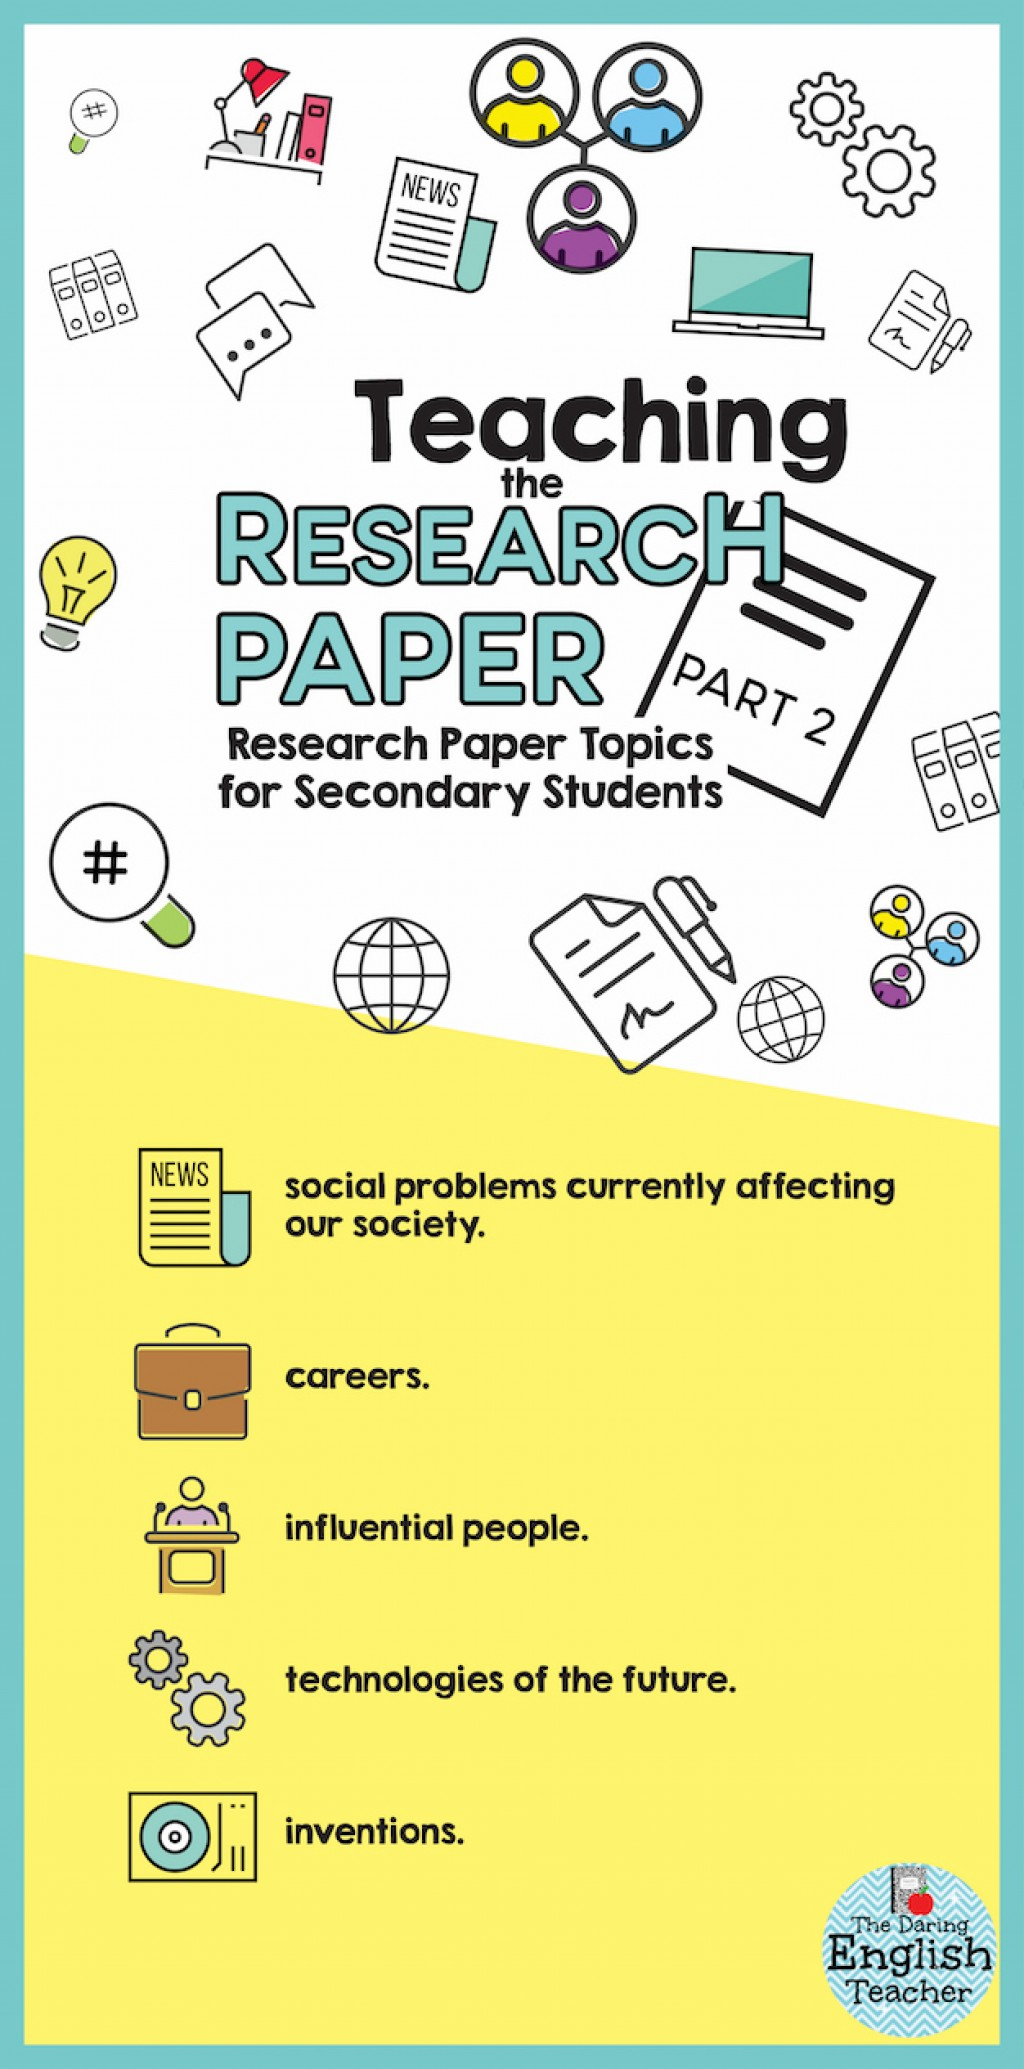 021 Interesting Topics For Research Paper Sensational A Ideas Reddit In The Philippines Large